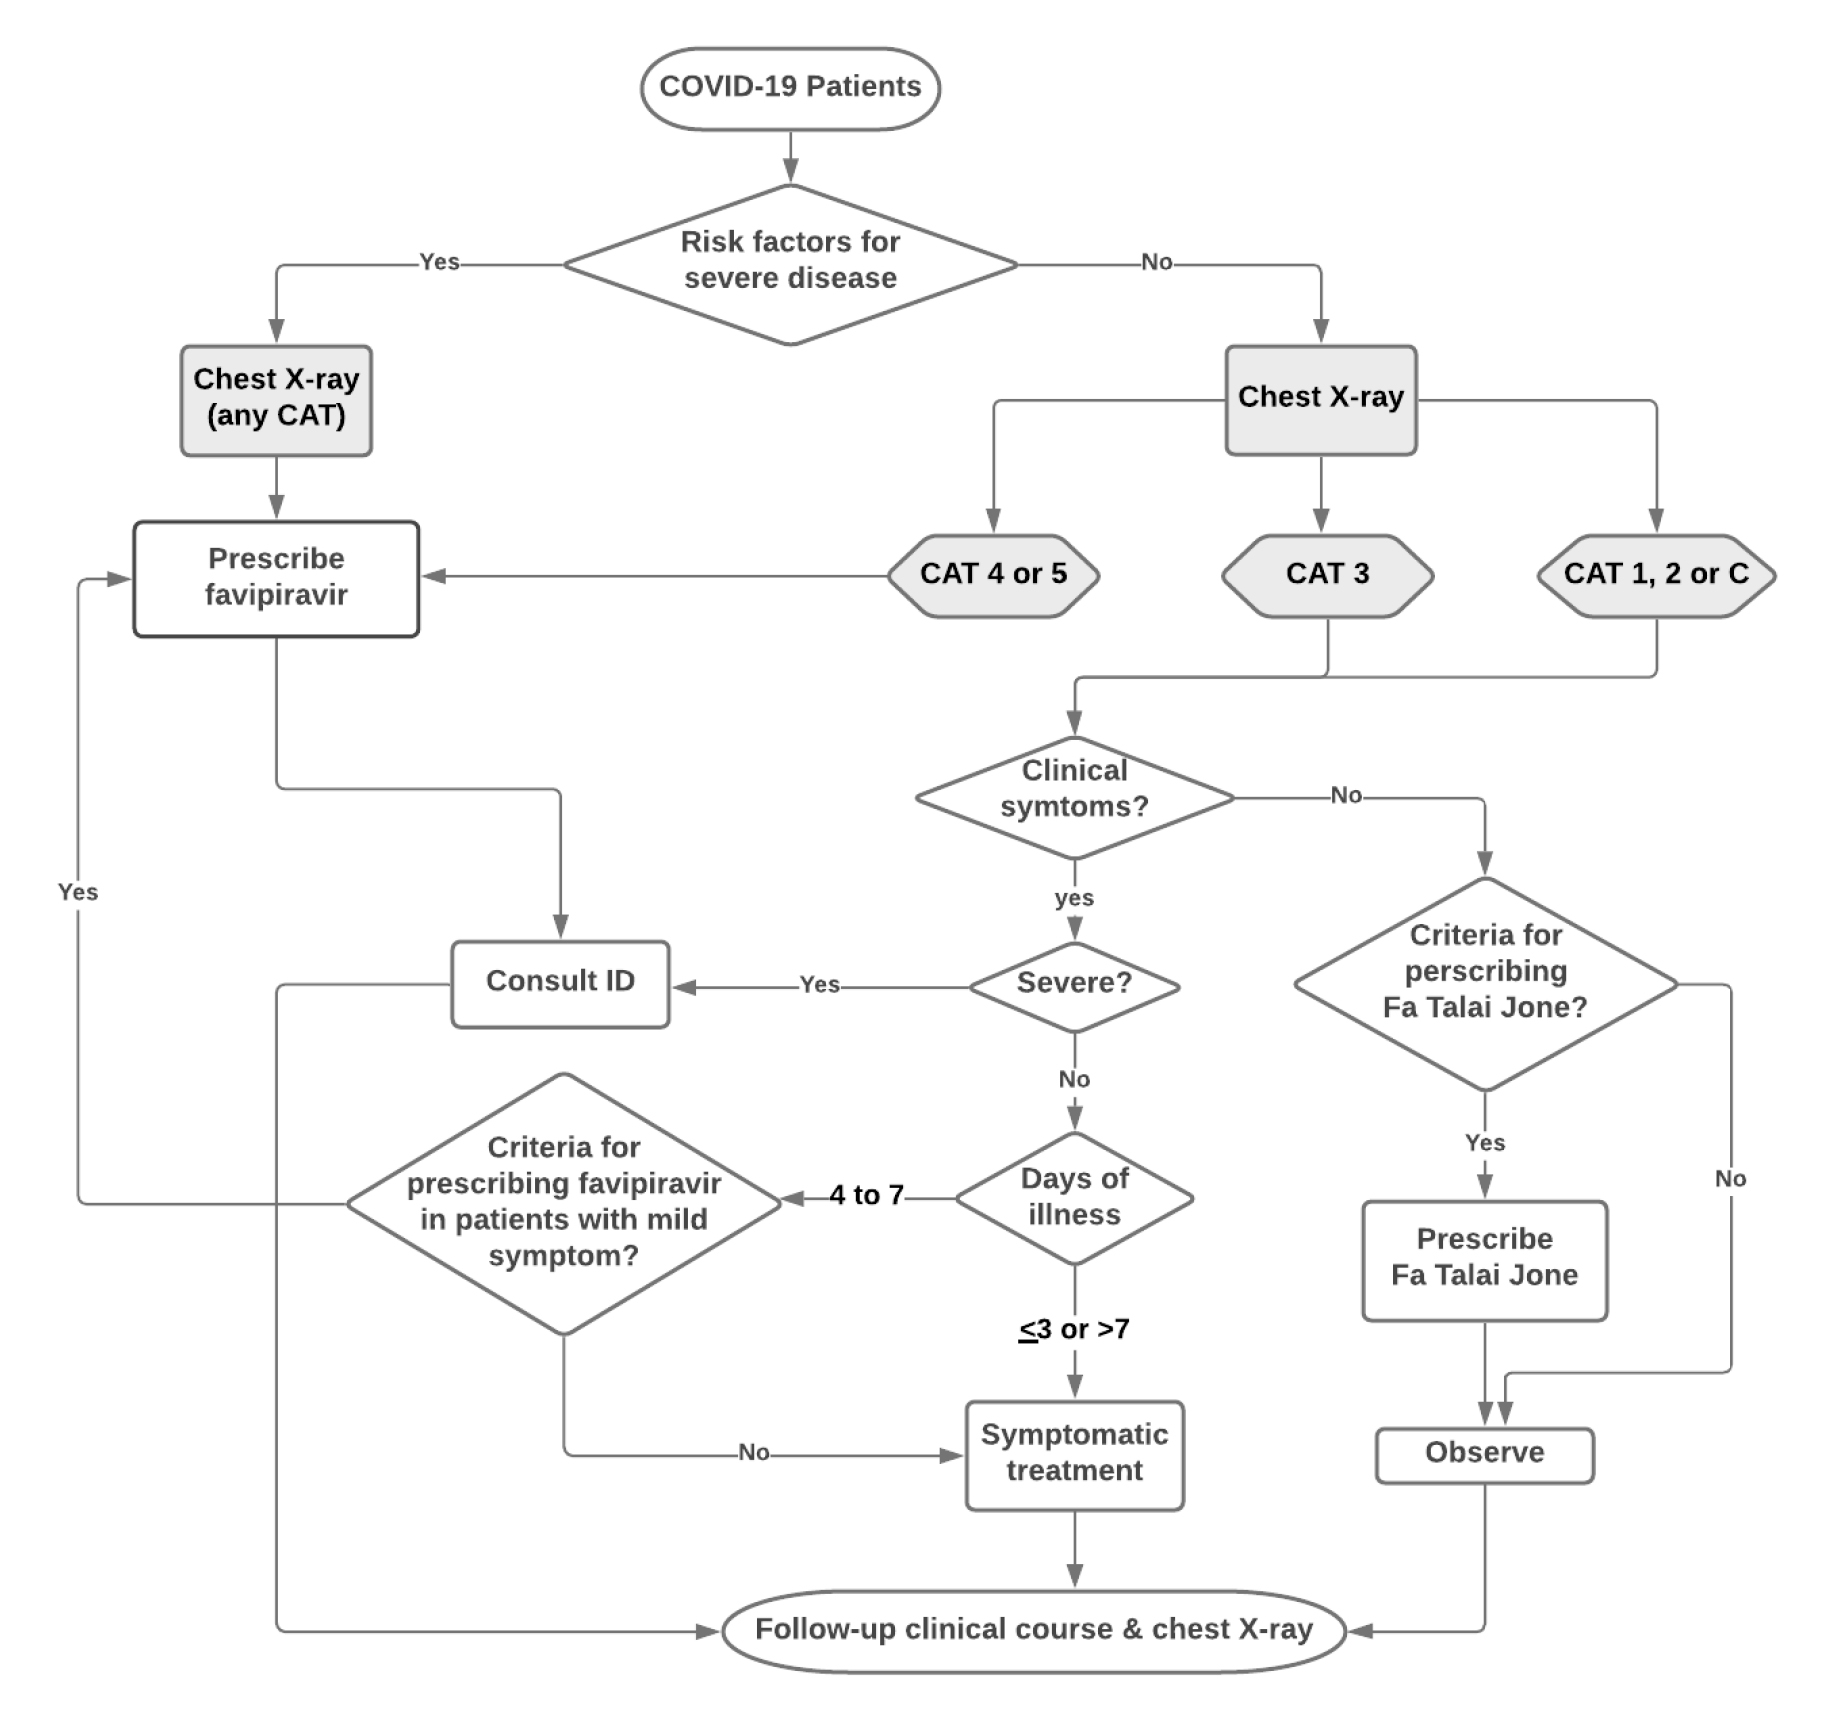 The workflow chart for the management and treatment of COVID-19 patients in Ramathibodi hospitels.